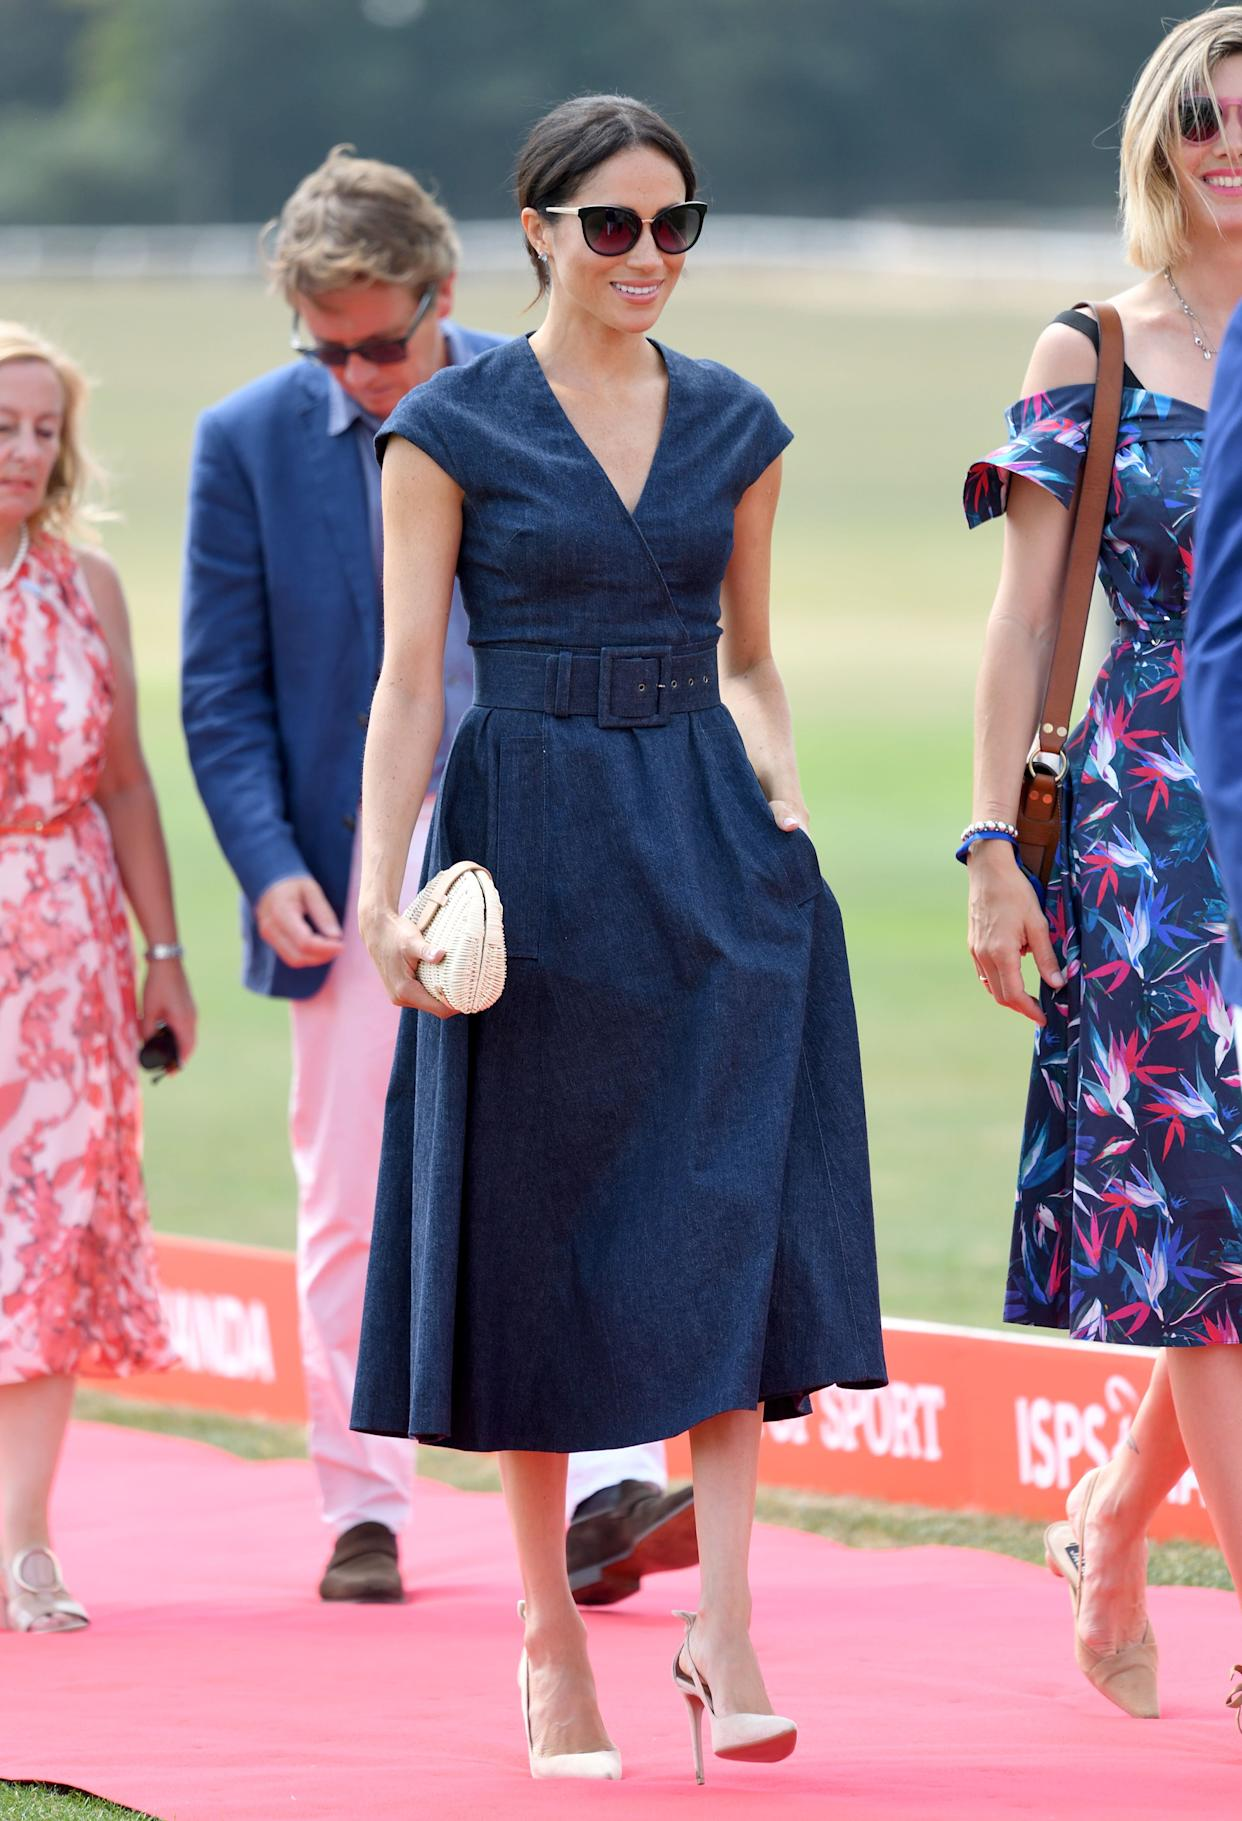 The duchess attends the Sentebale ISPS Handa Polo Cup at the Royal County of Berkshire Polo Club on July 26 in Windsor, England.